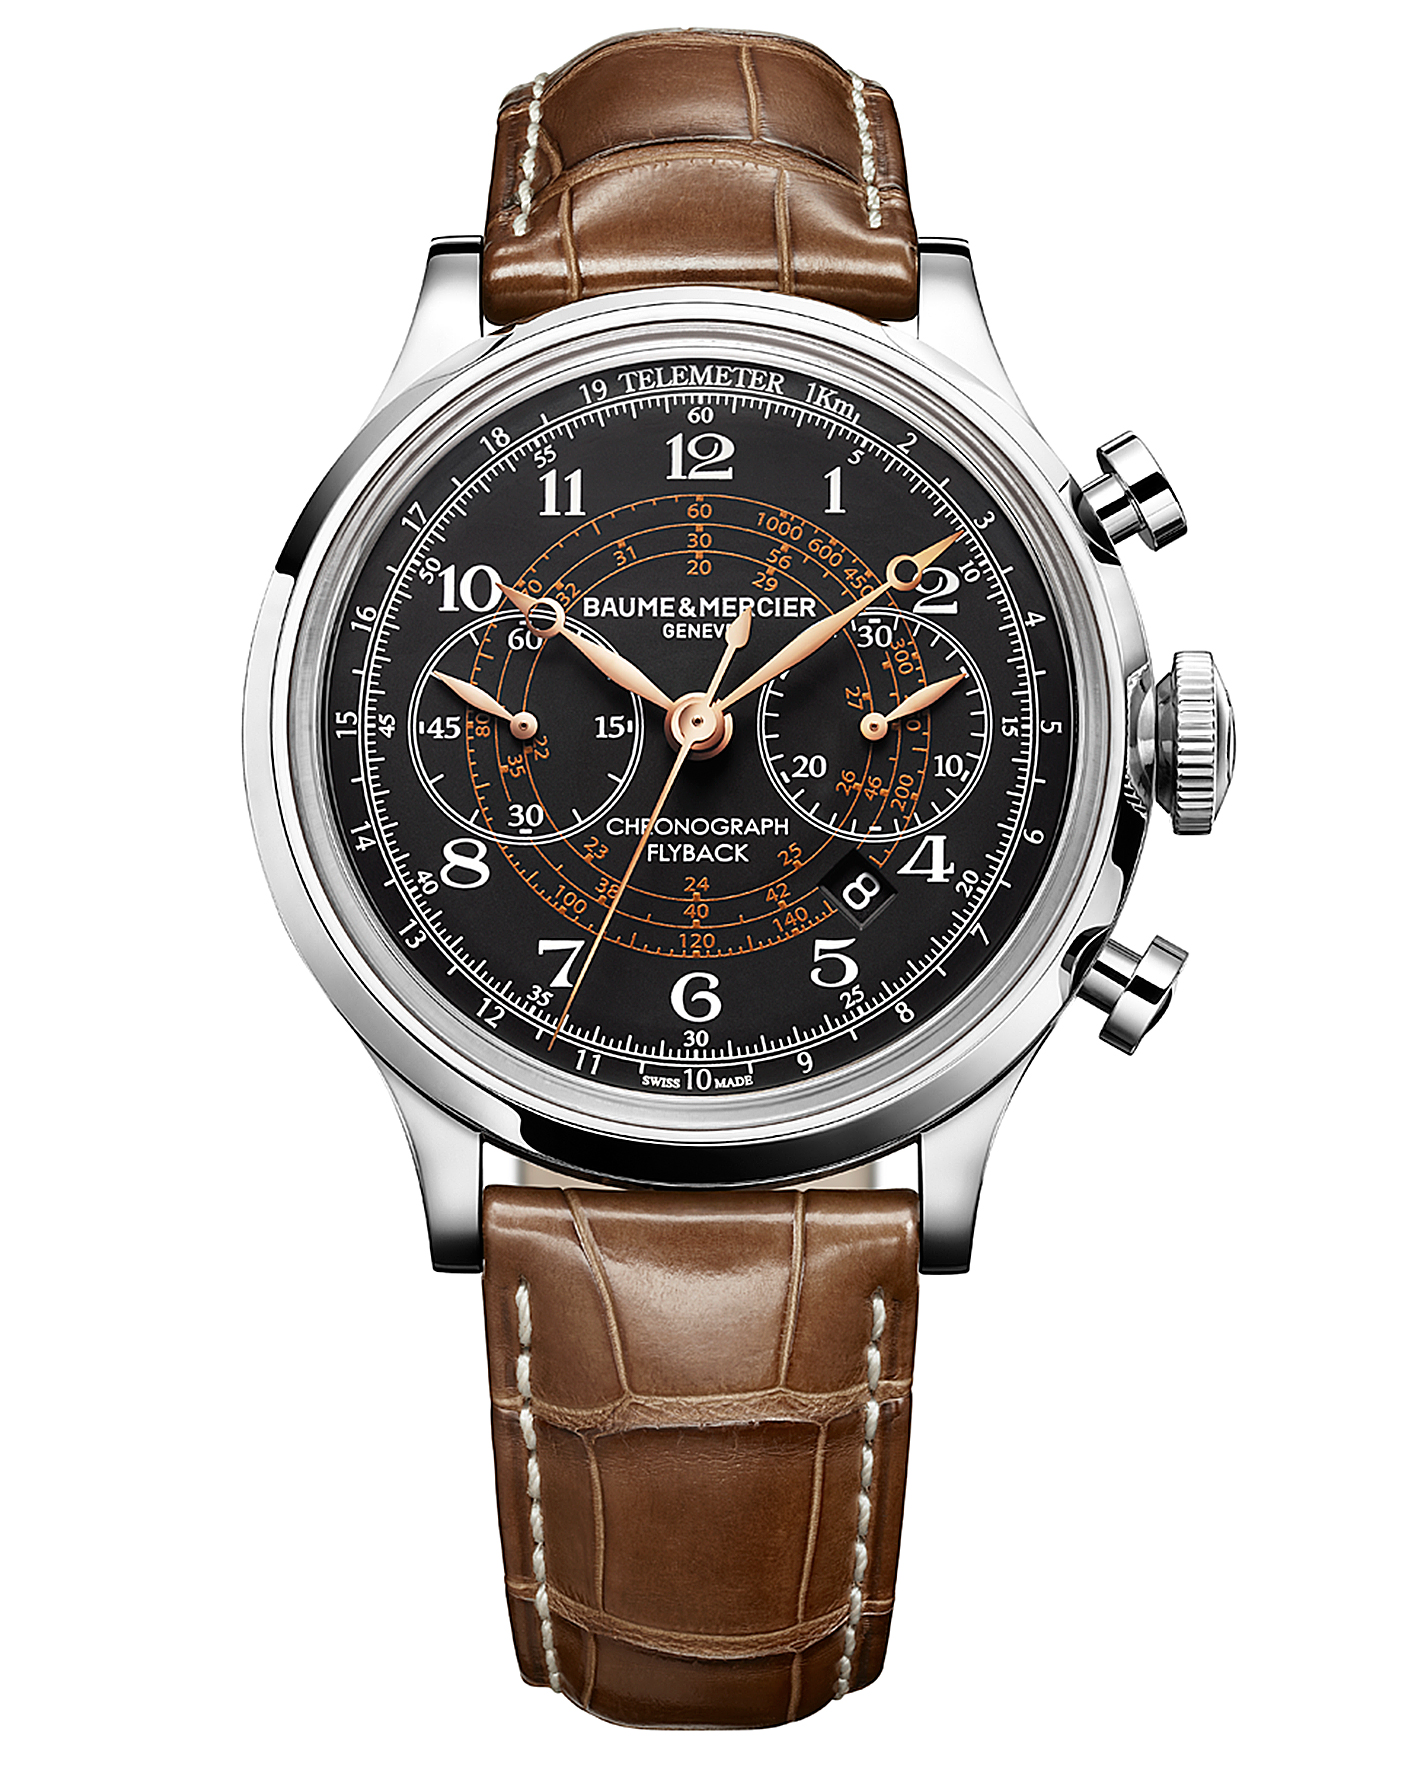 baume-mercier-watch-capeland-10068-0514.jpg